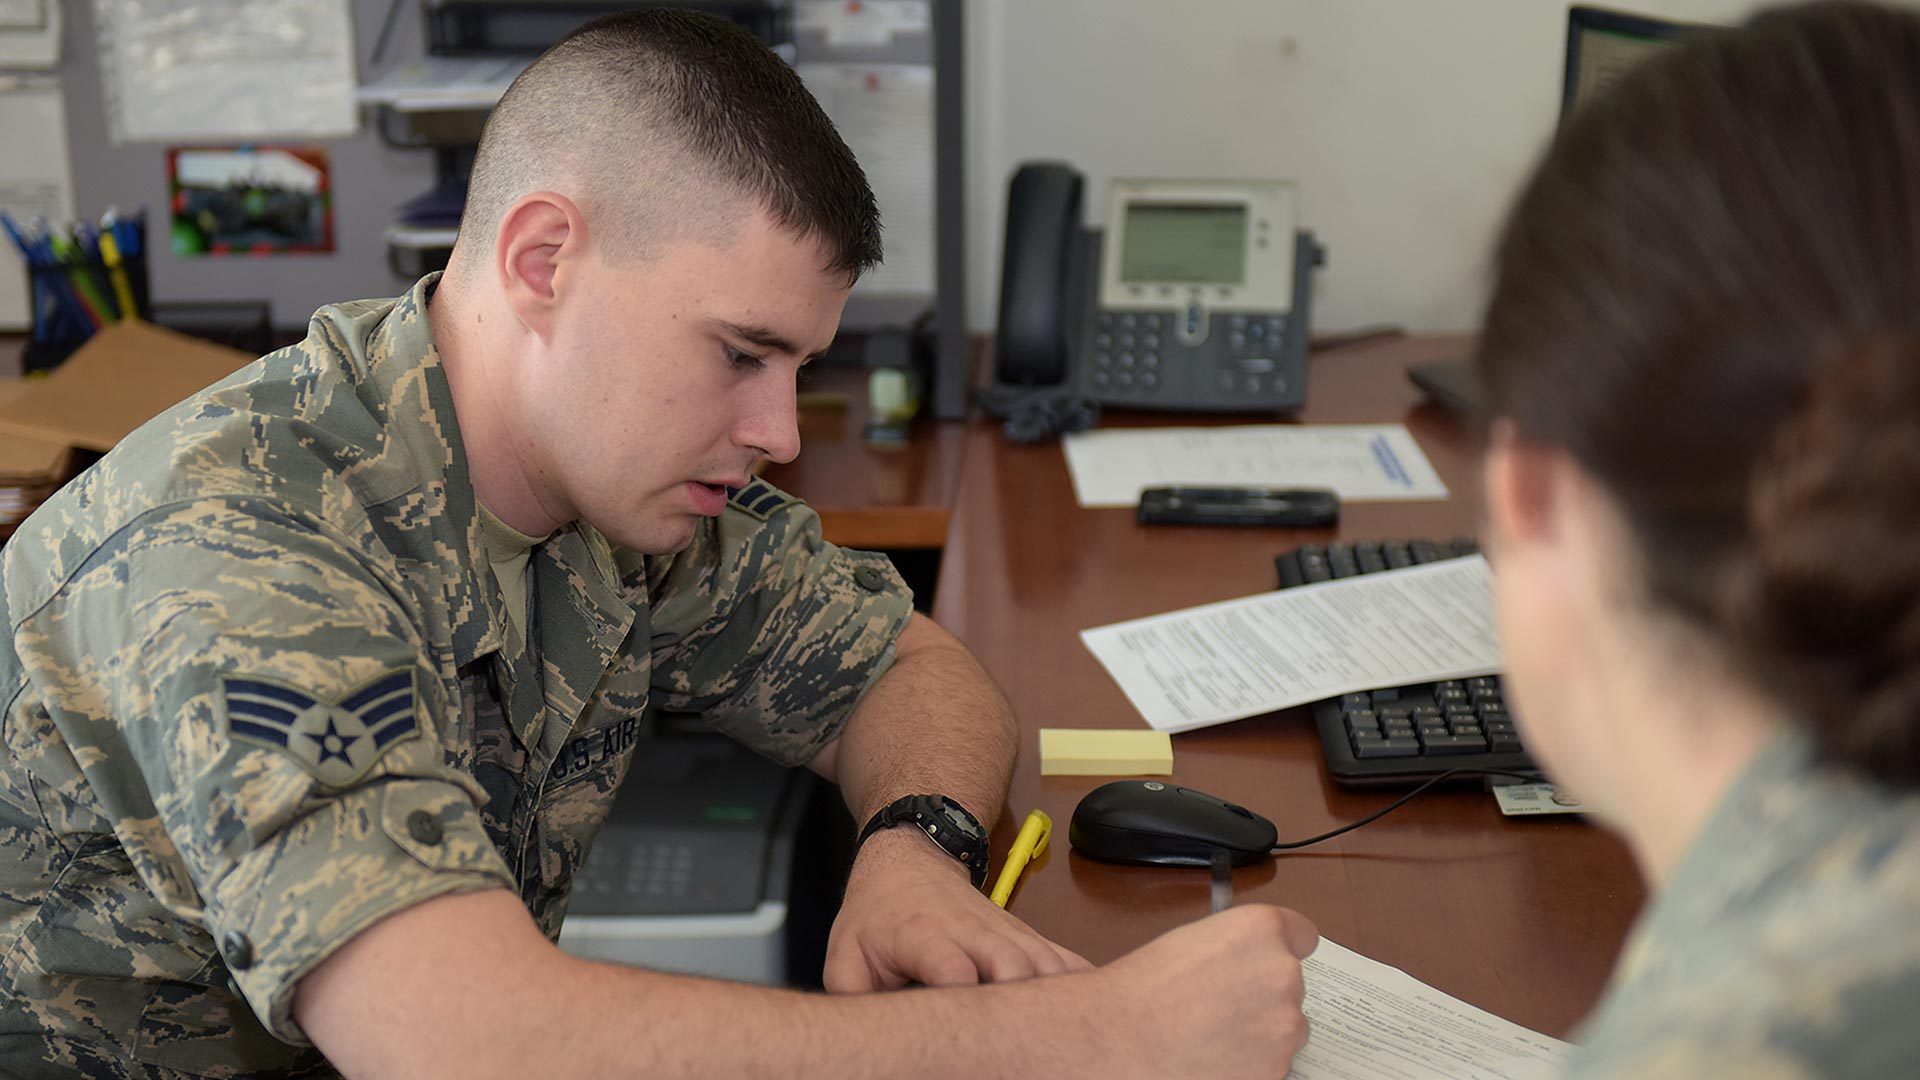 Airman assisting with PCS claim forms